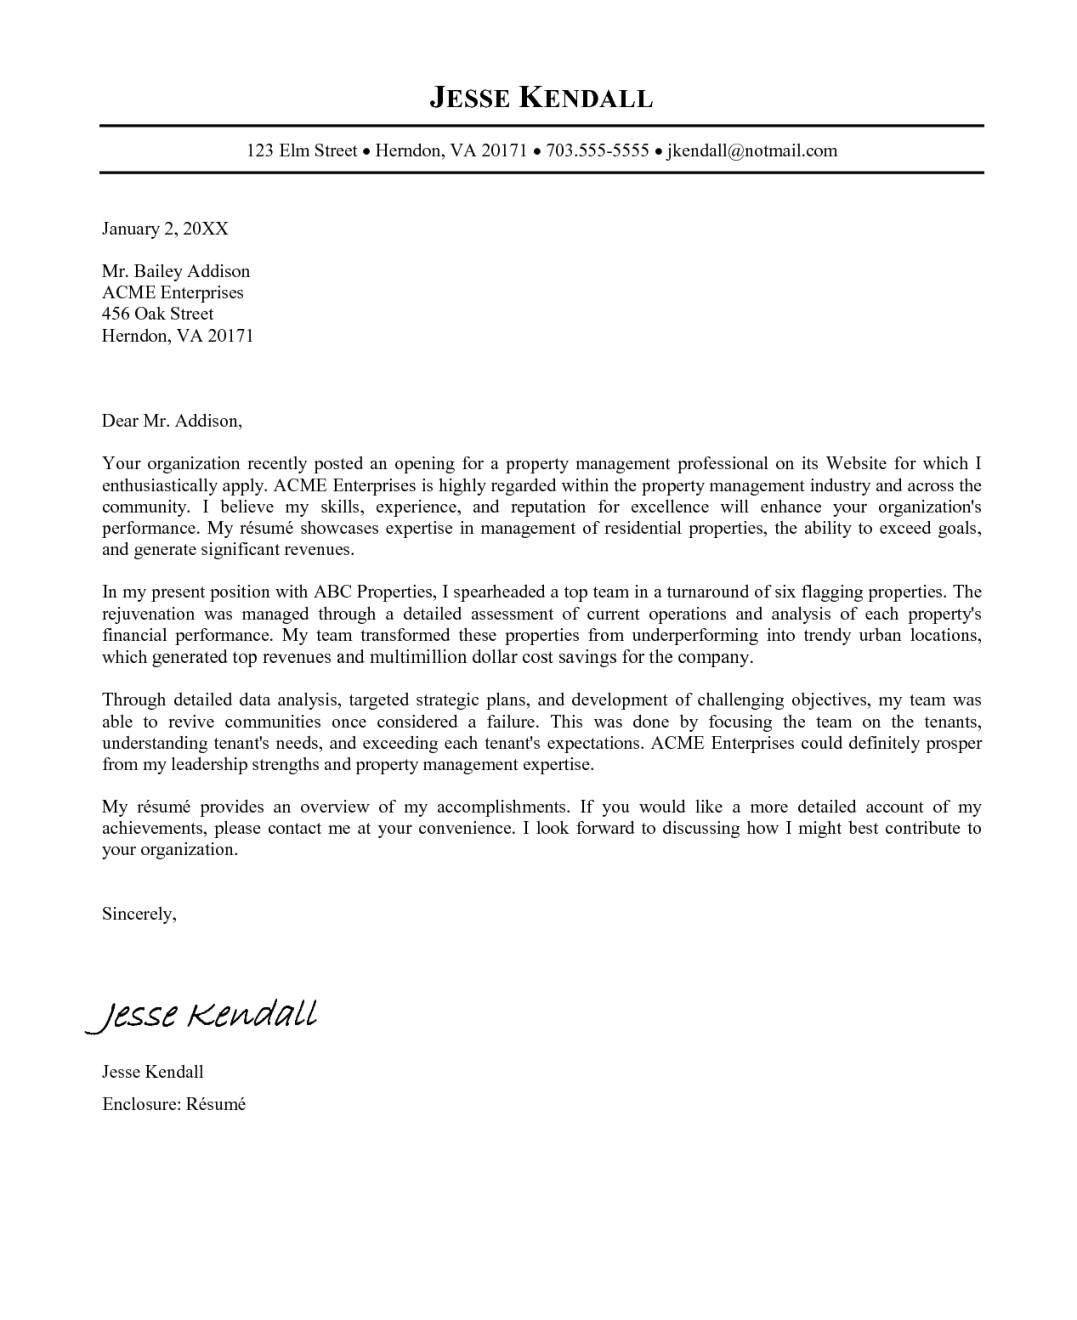 Cover Letter for Sap Abap Consultant 44 Cover Letter for Sap Abap Consultant Curriculum Vitae